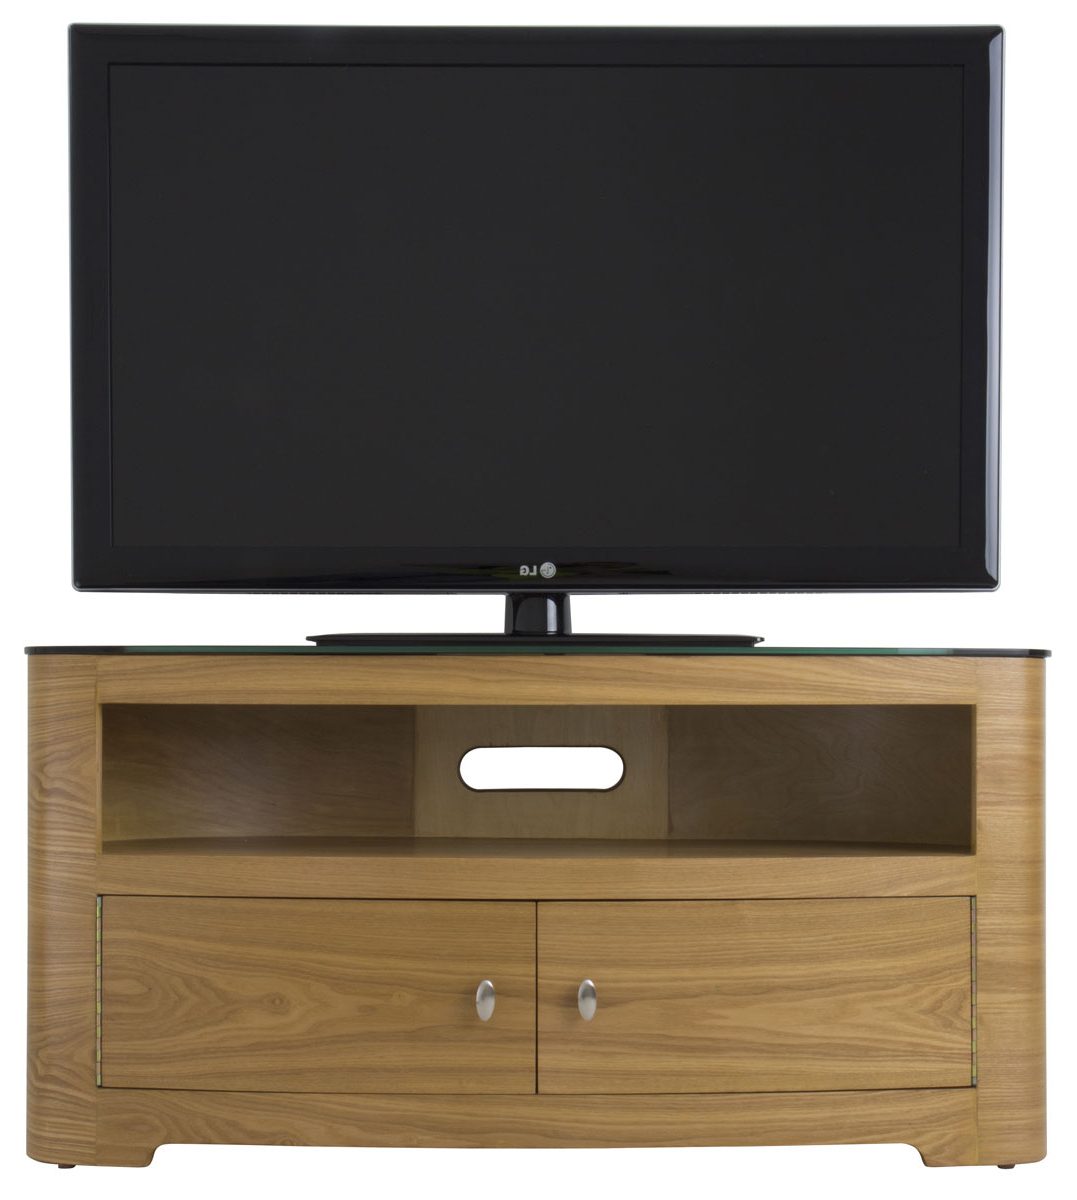 Most Recent Tv Stands Rounded Corners For Tv Stand With Rounded Corners Target Ikea Hemnes Round Orange Black (Gallery 5 of 20)